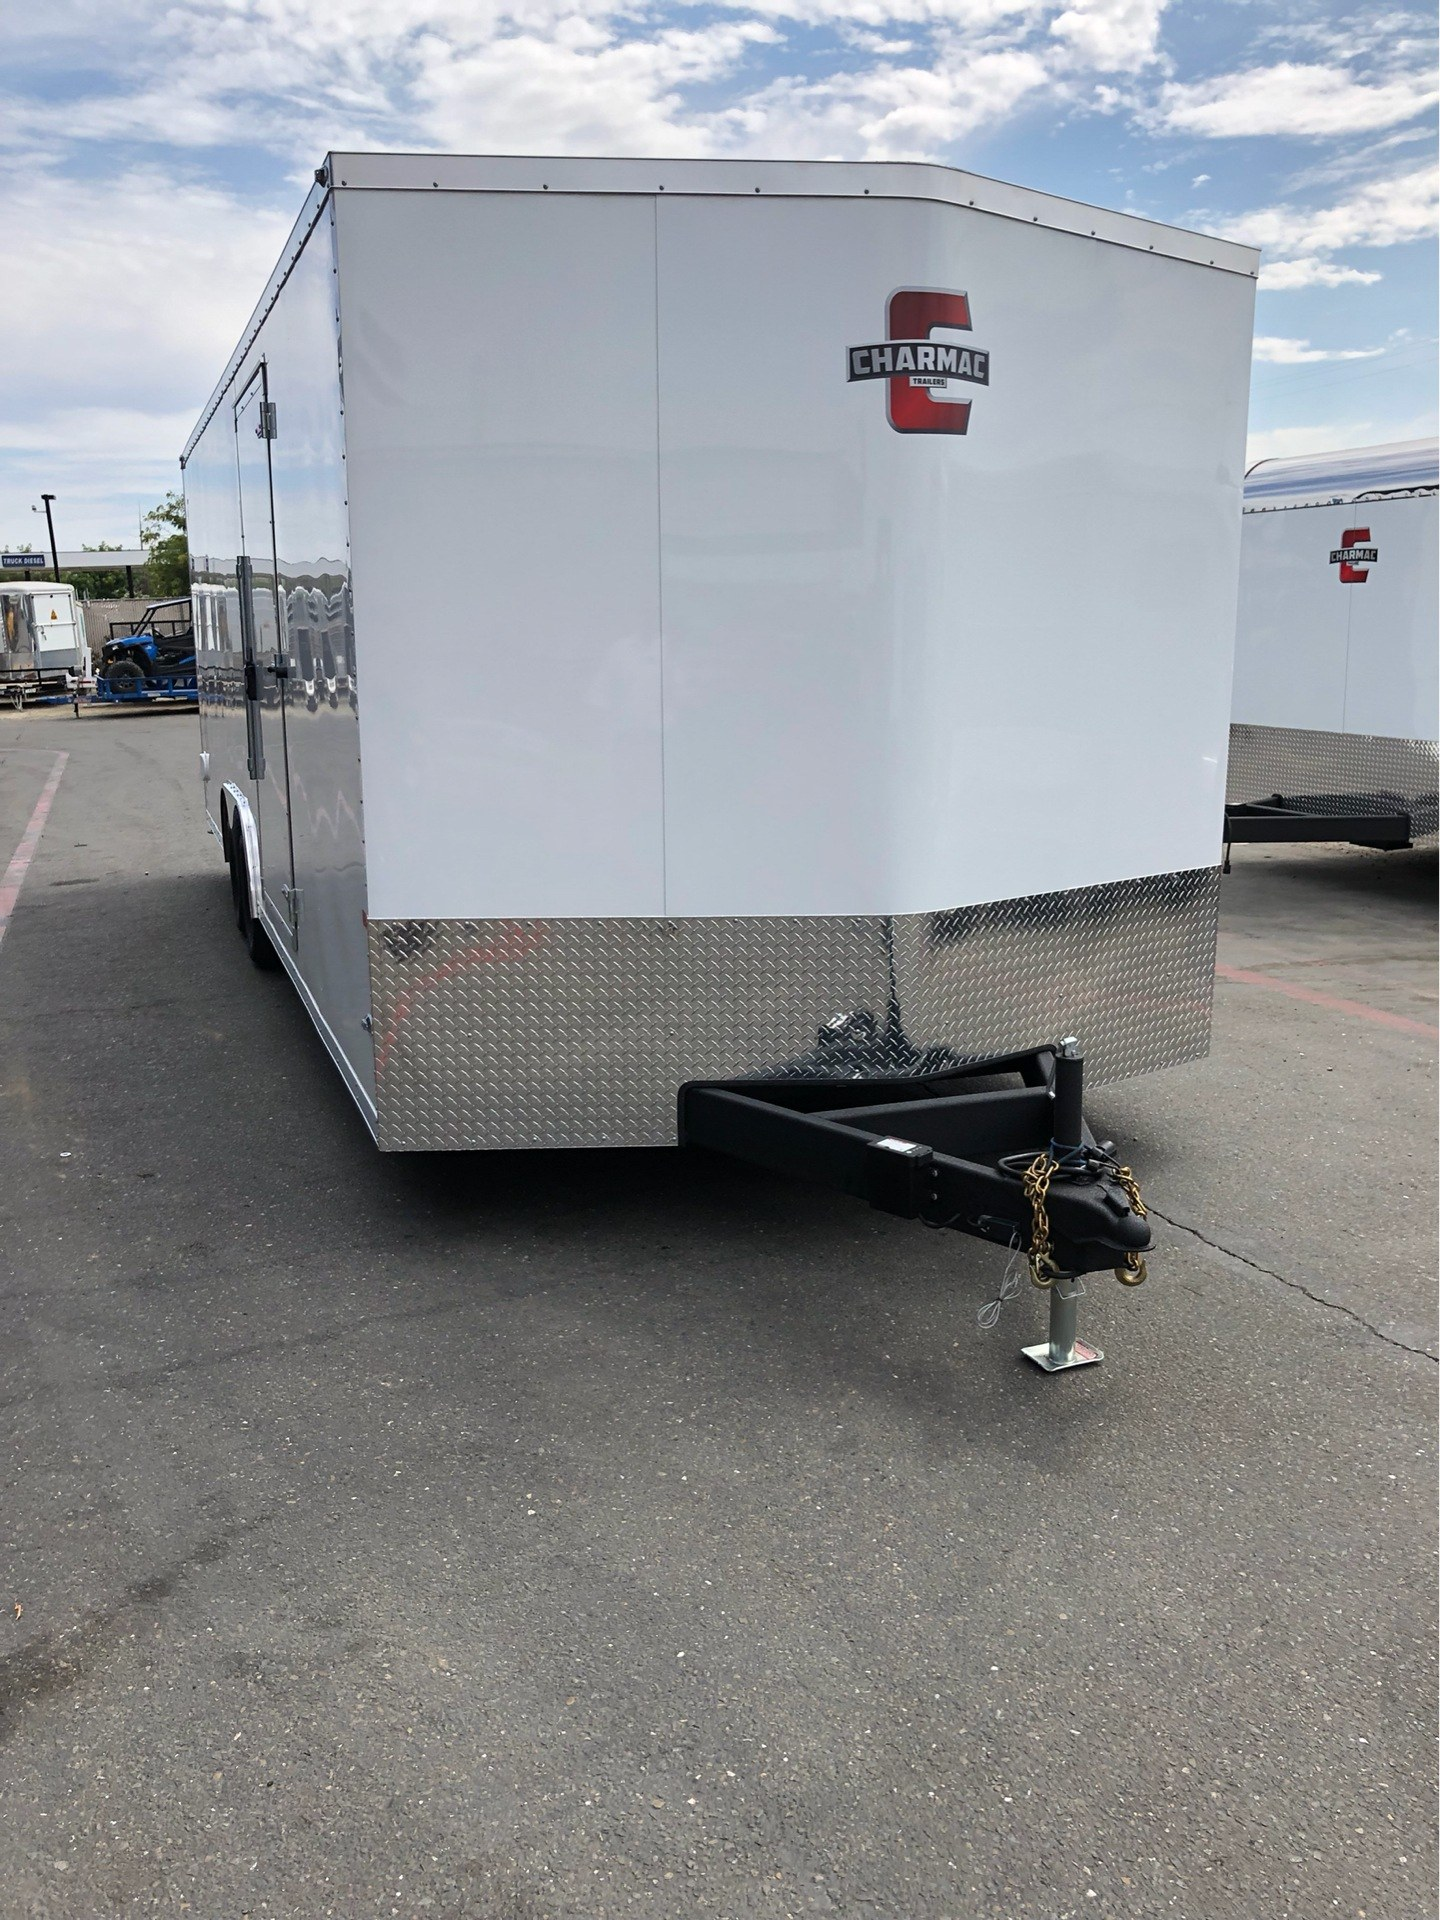 2020 Charmac Trailers 24' STEALTH CAR HAULER in Elk Grove, California - Photo 3